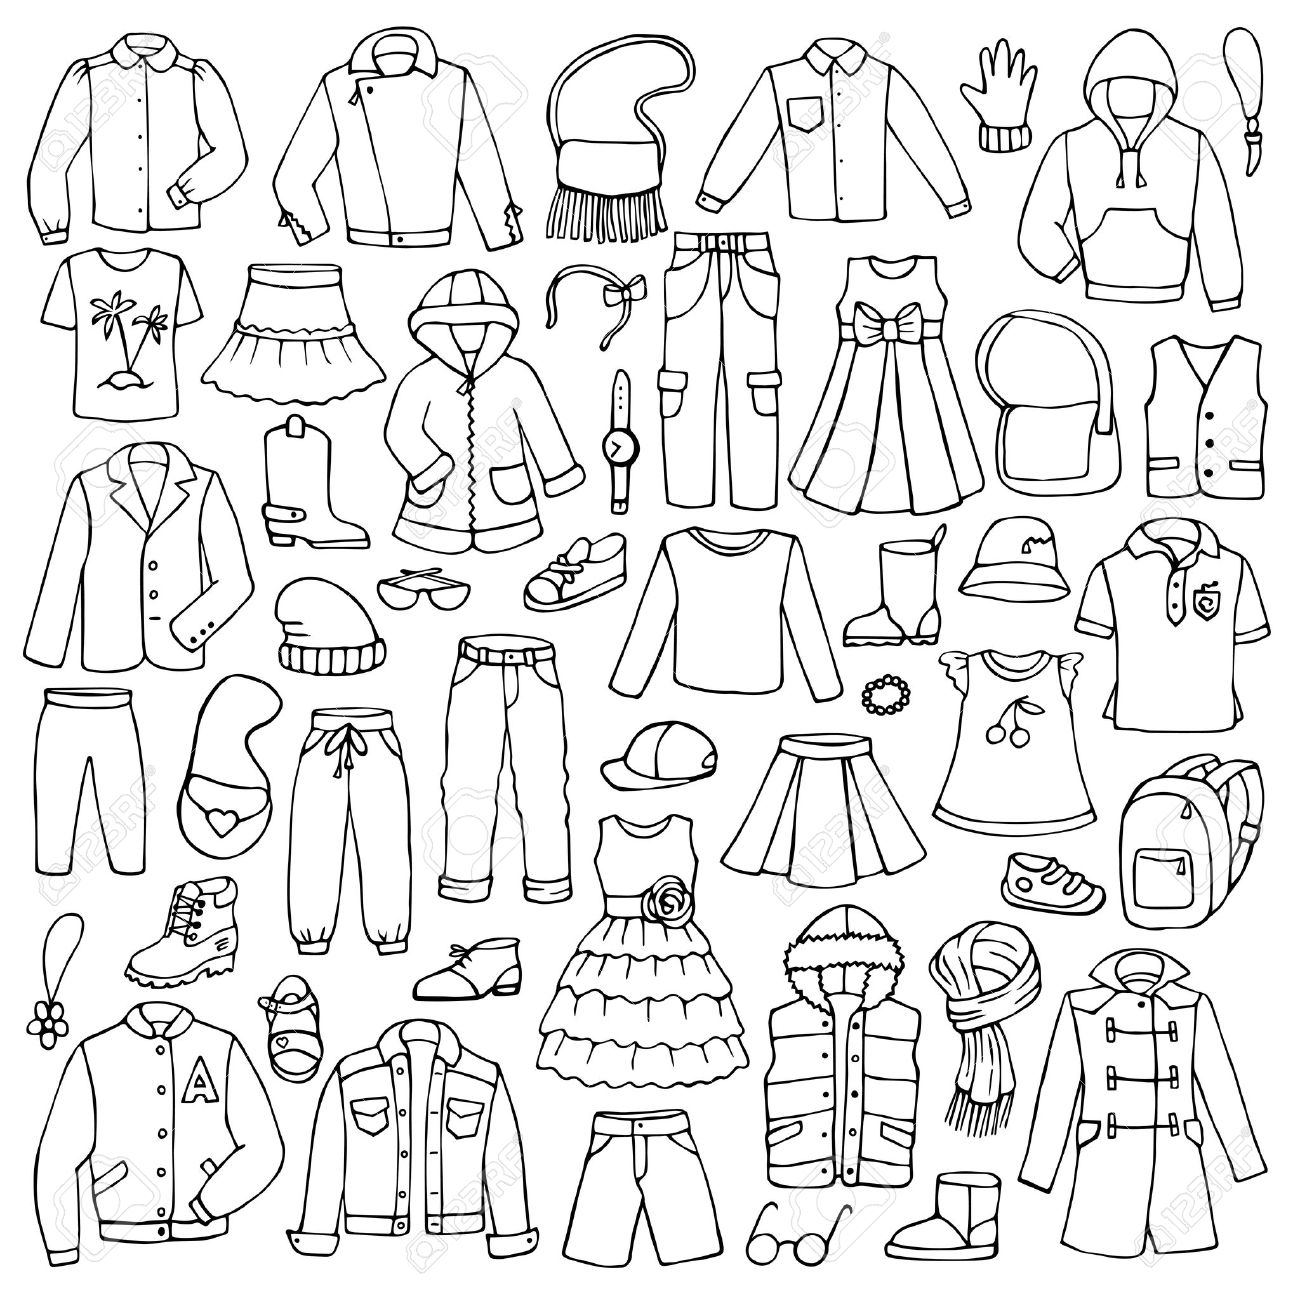 1300x1300 Hand Drawn Doodle Set With Childish Clothes Royalty Free Cliparts